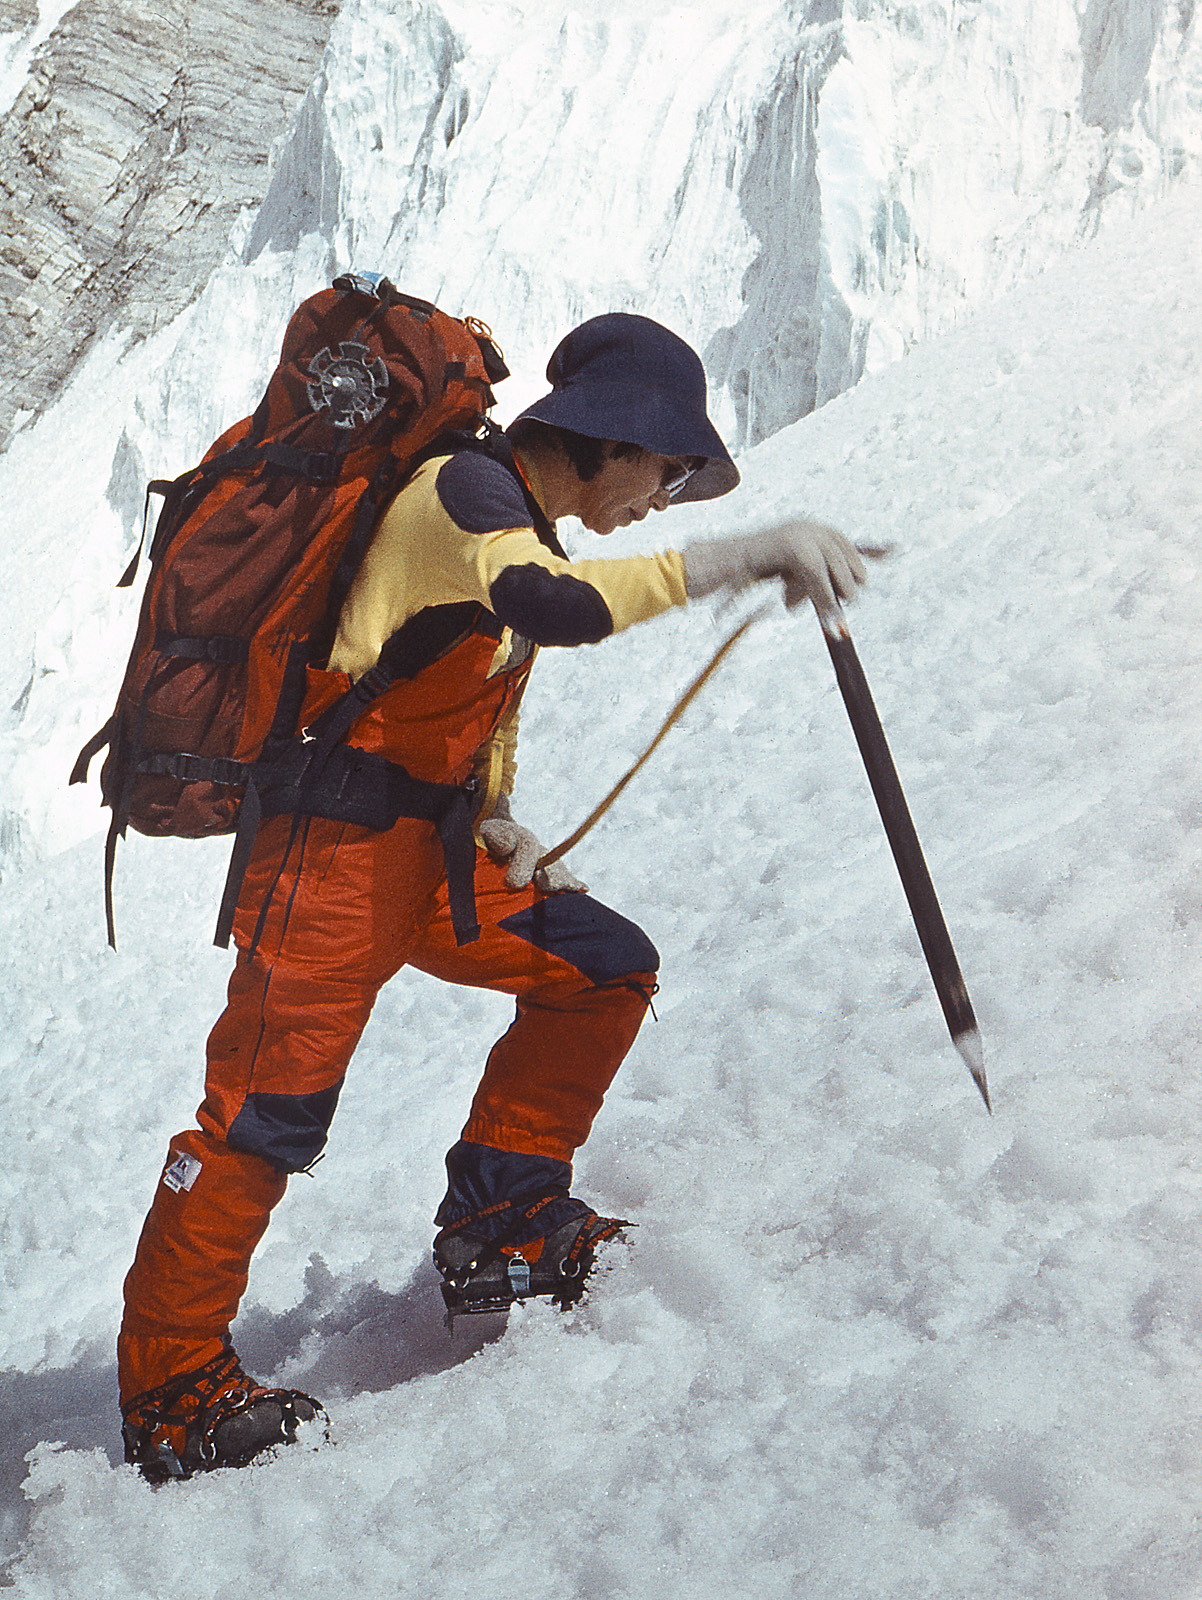 Junko Tabei is a Japanese mountain-climber who, on May 16, 1975, became the first woman to reach the summit of Mount Everest.